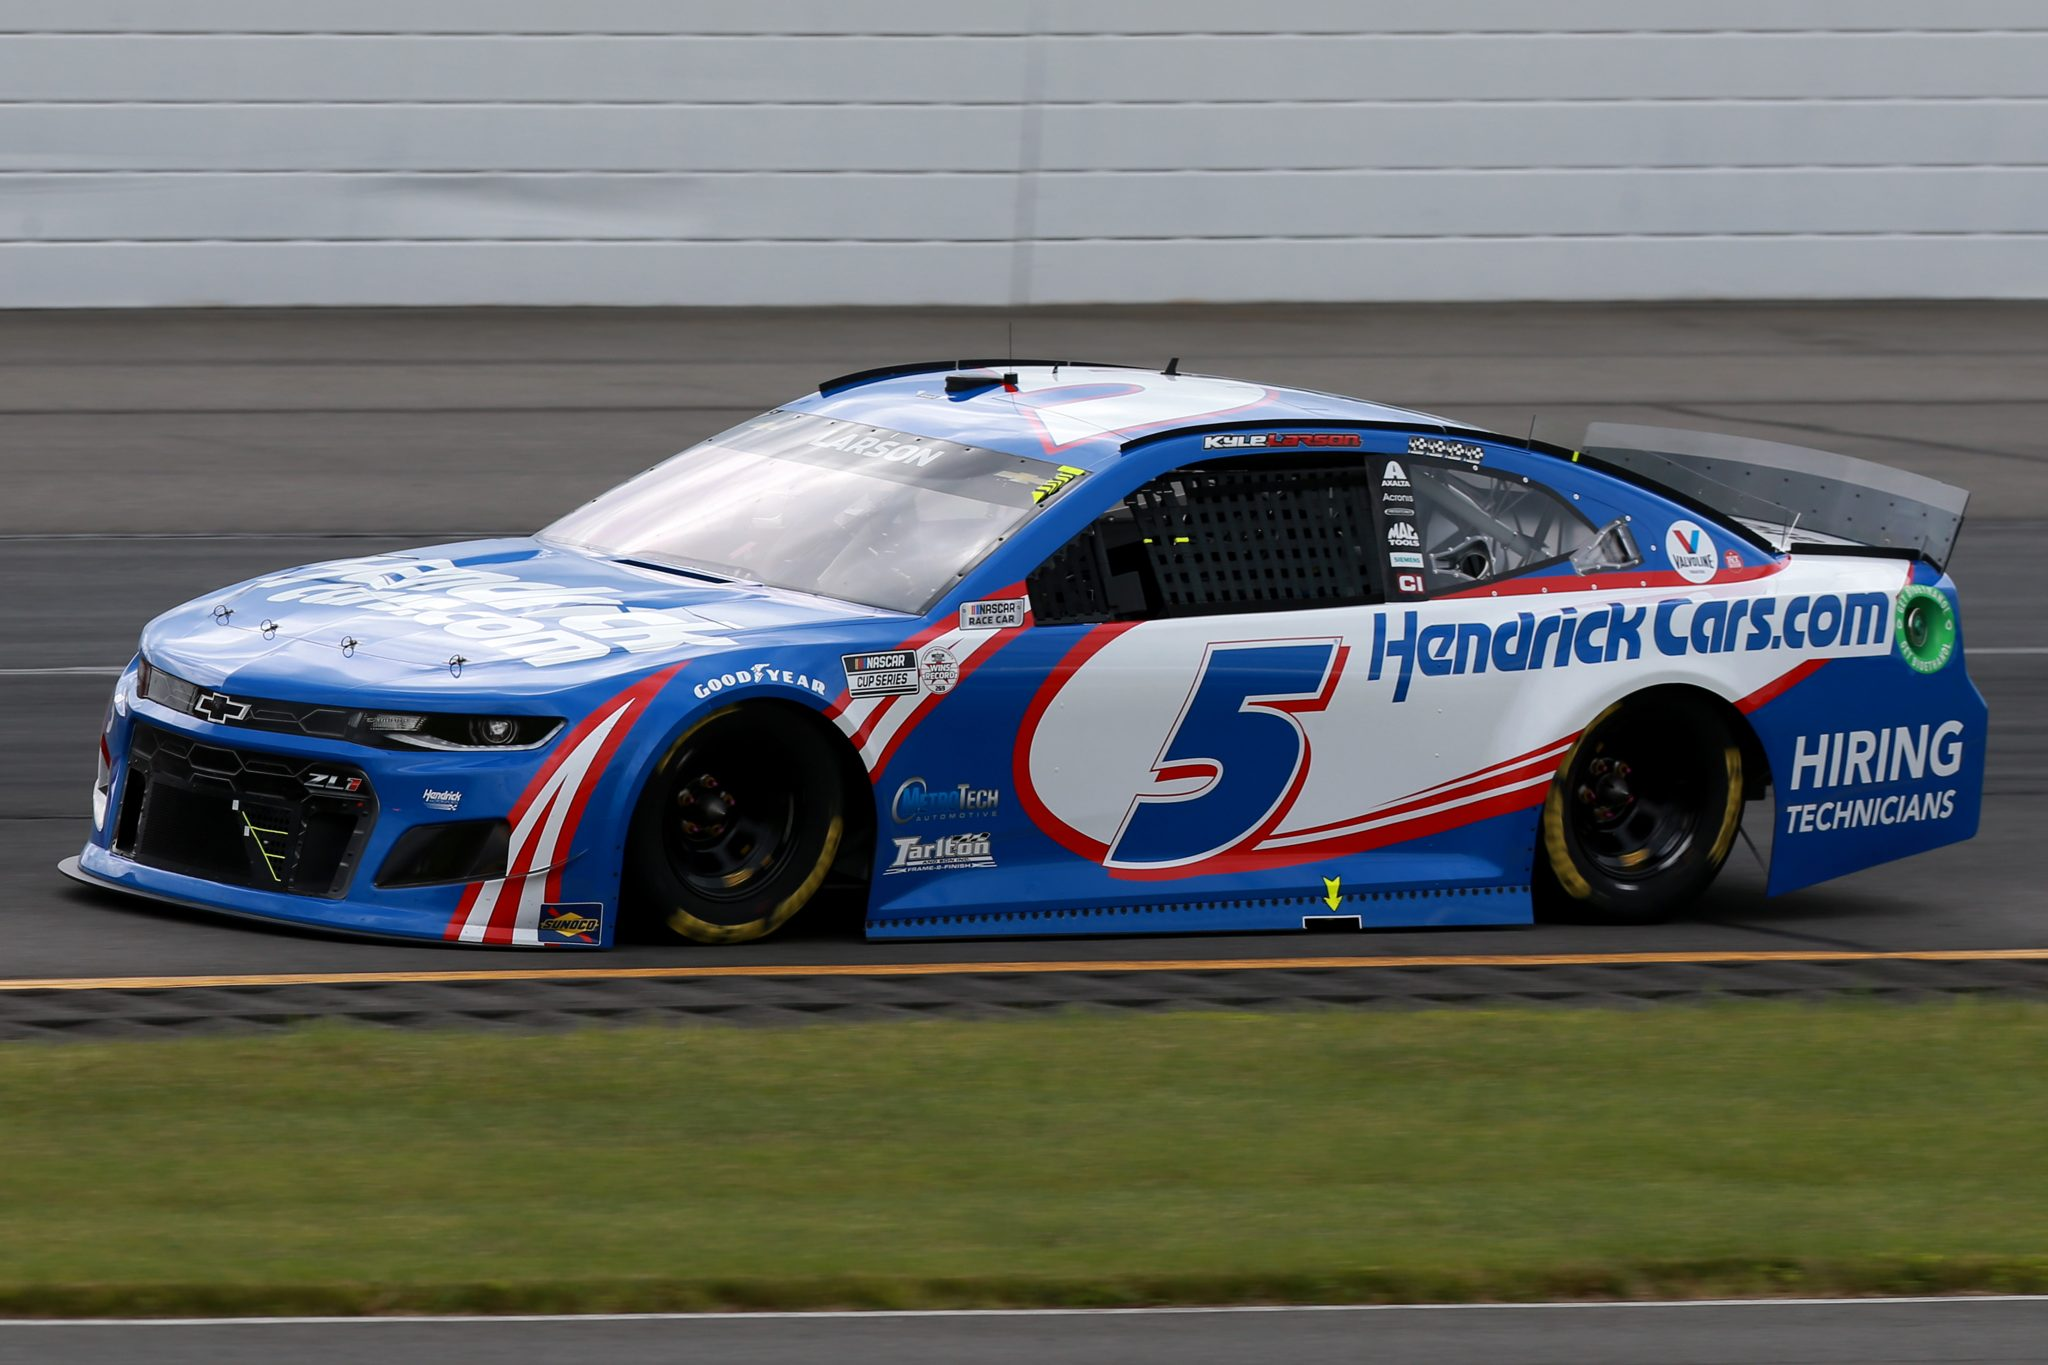 LONG POND, PENNSYLVANIA - JUNE 26: Kyle Larson, driver of the #5 HendrickCars.com Chevrolet, drives during the NASCAR Cup Series Pocono Organics CBD 325 at Pocono Raceway on June 26, 2021 in Long Pond, Pennsylvania. (Photo by Sean Gardner/Getty Images) | Getty Images